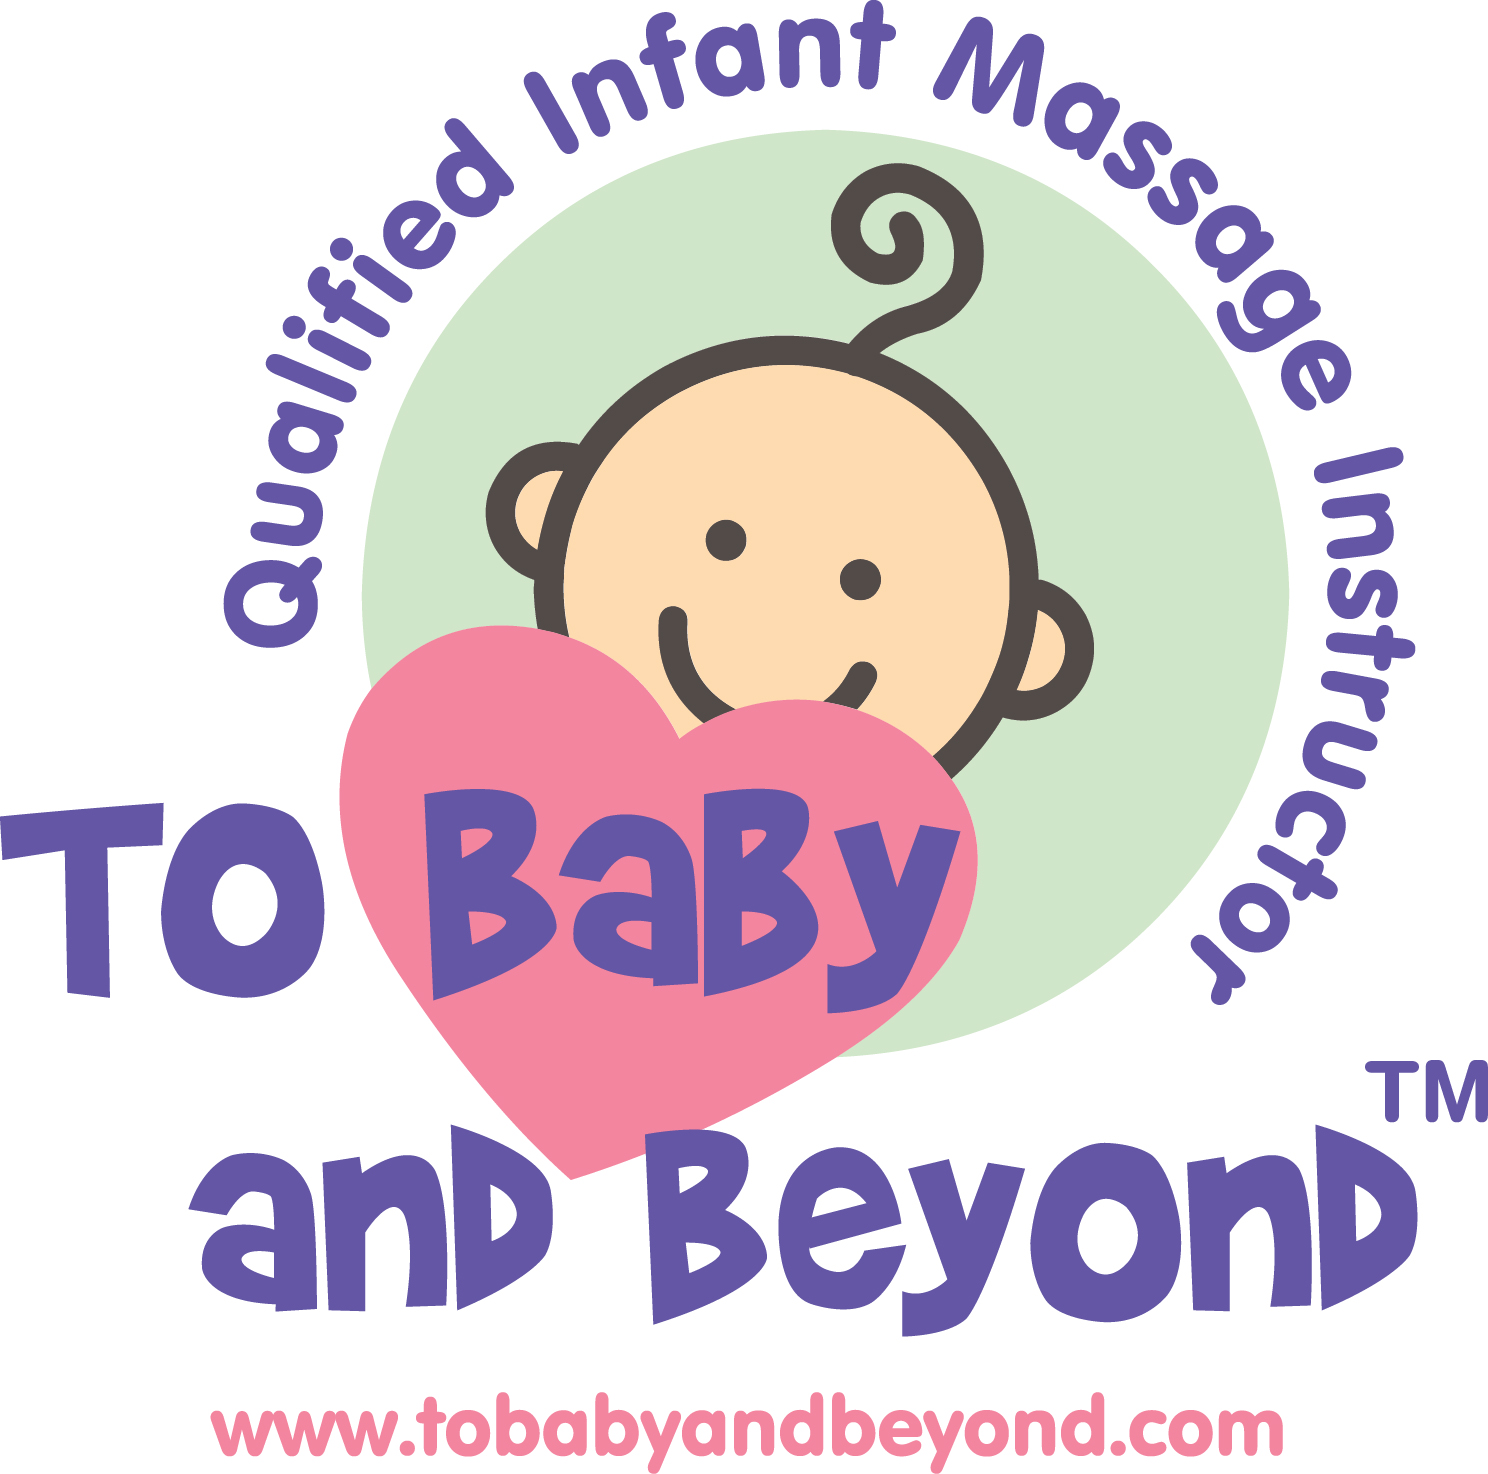 Grow Together - Baby Massage and Yoga's main image